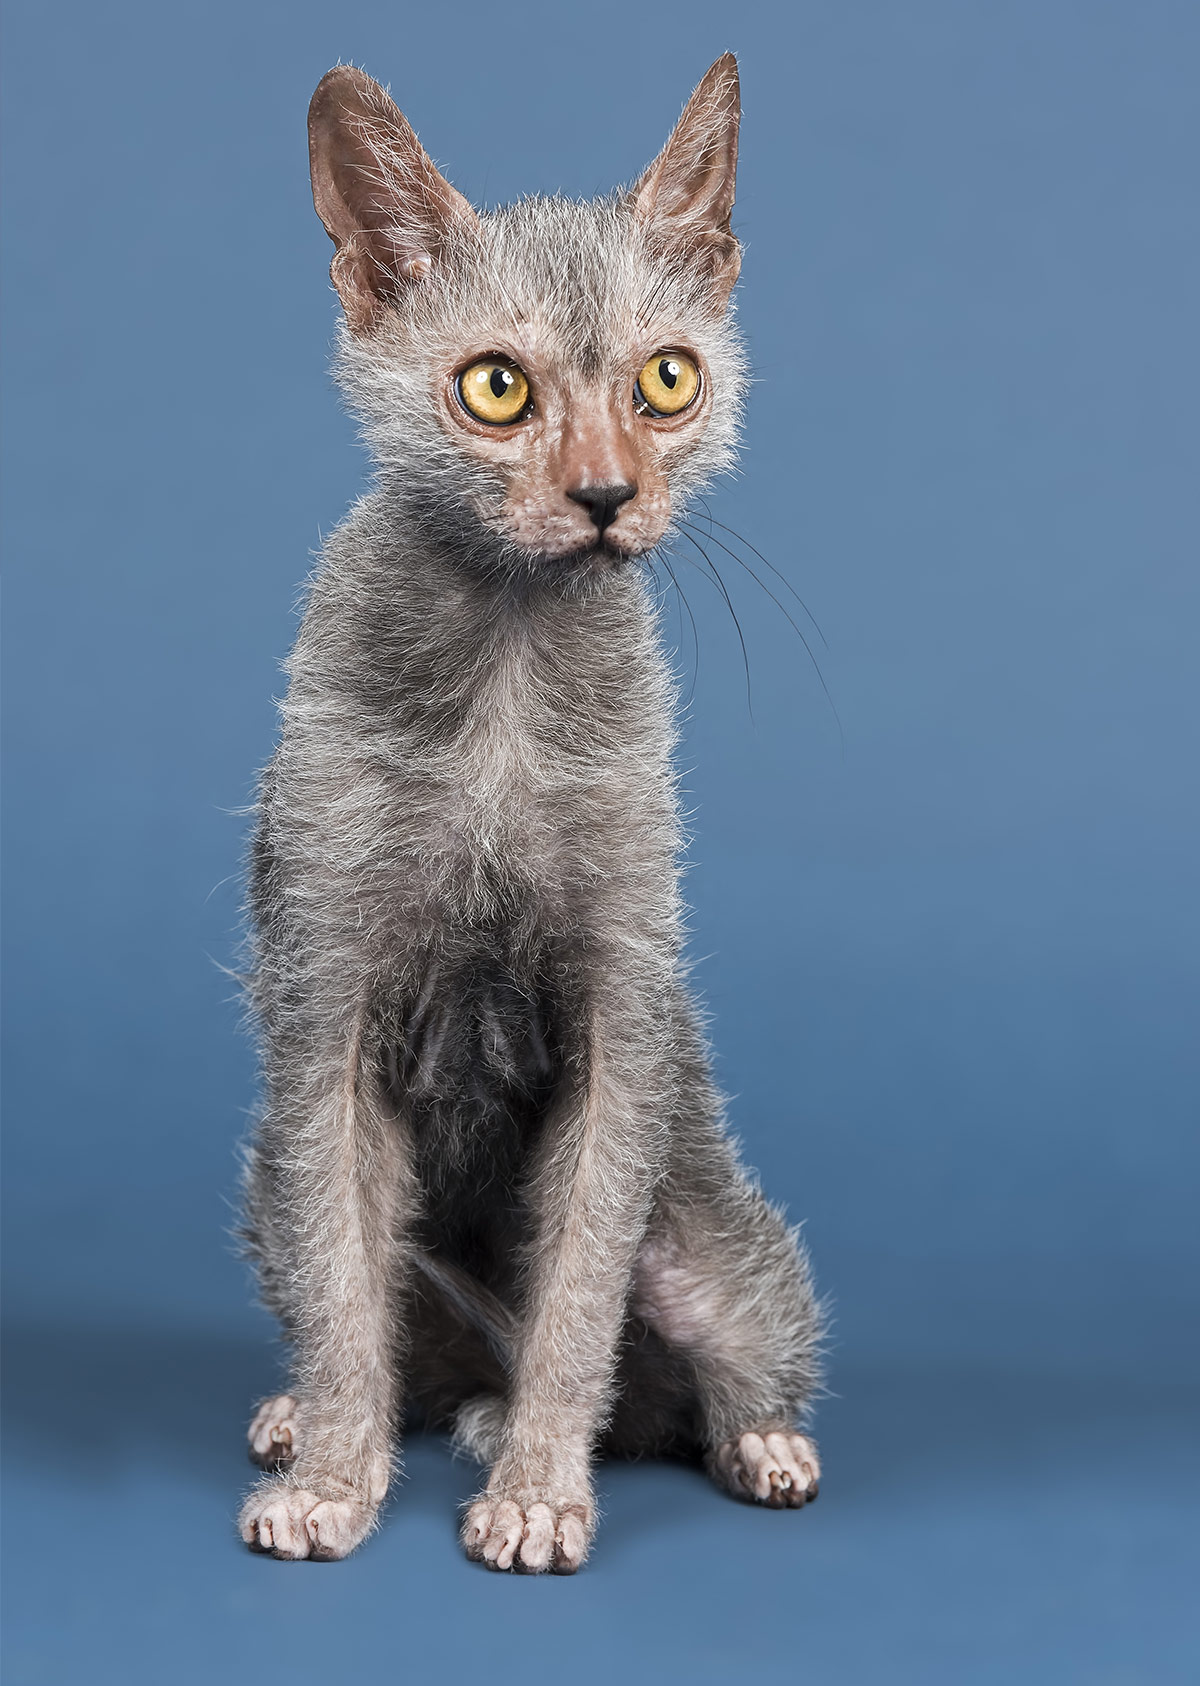 Werewolf Kitten - The Lykoi Breed